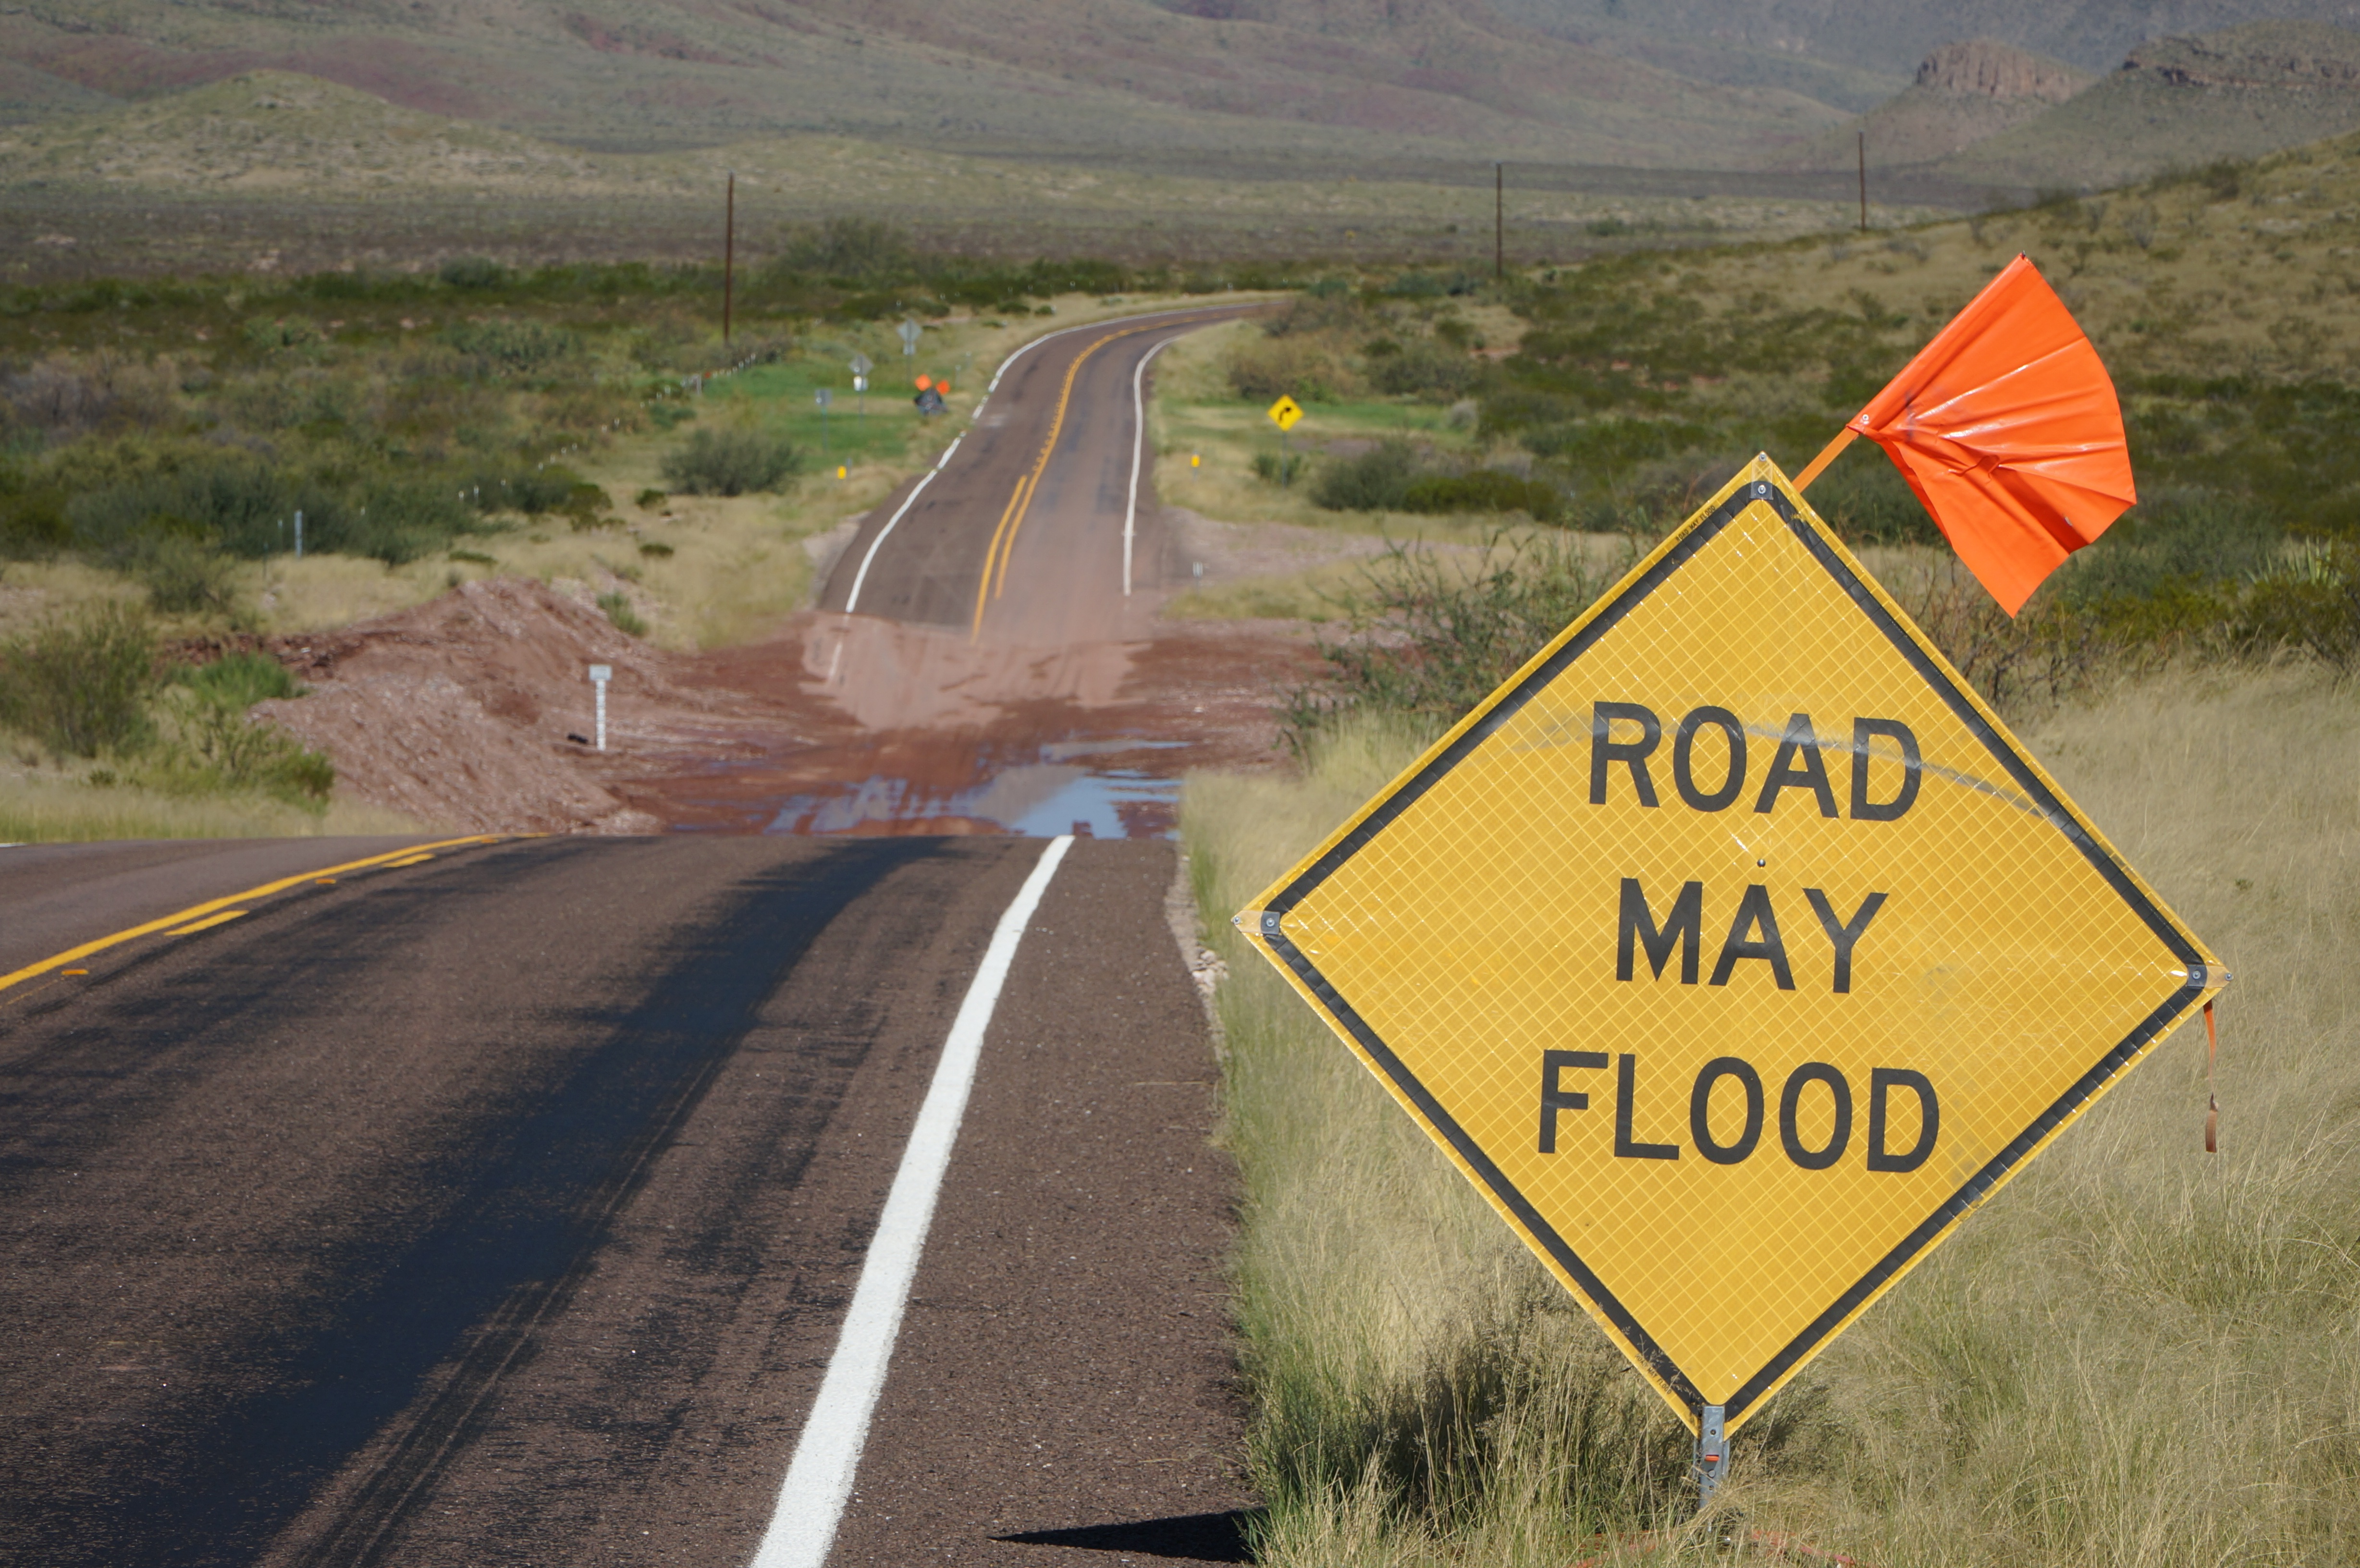 New flood model: Slight increases in rainfall can create major traffic disruptions